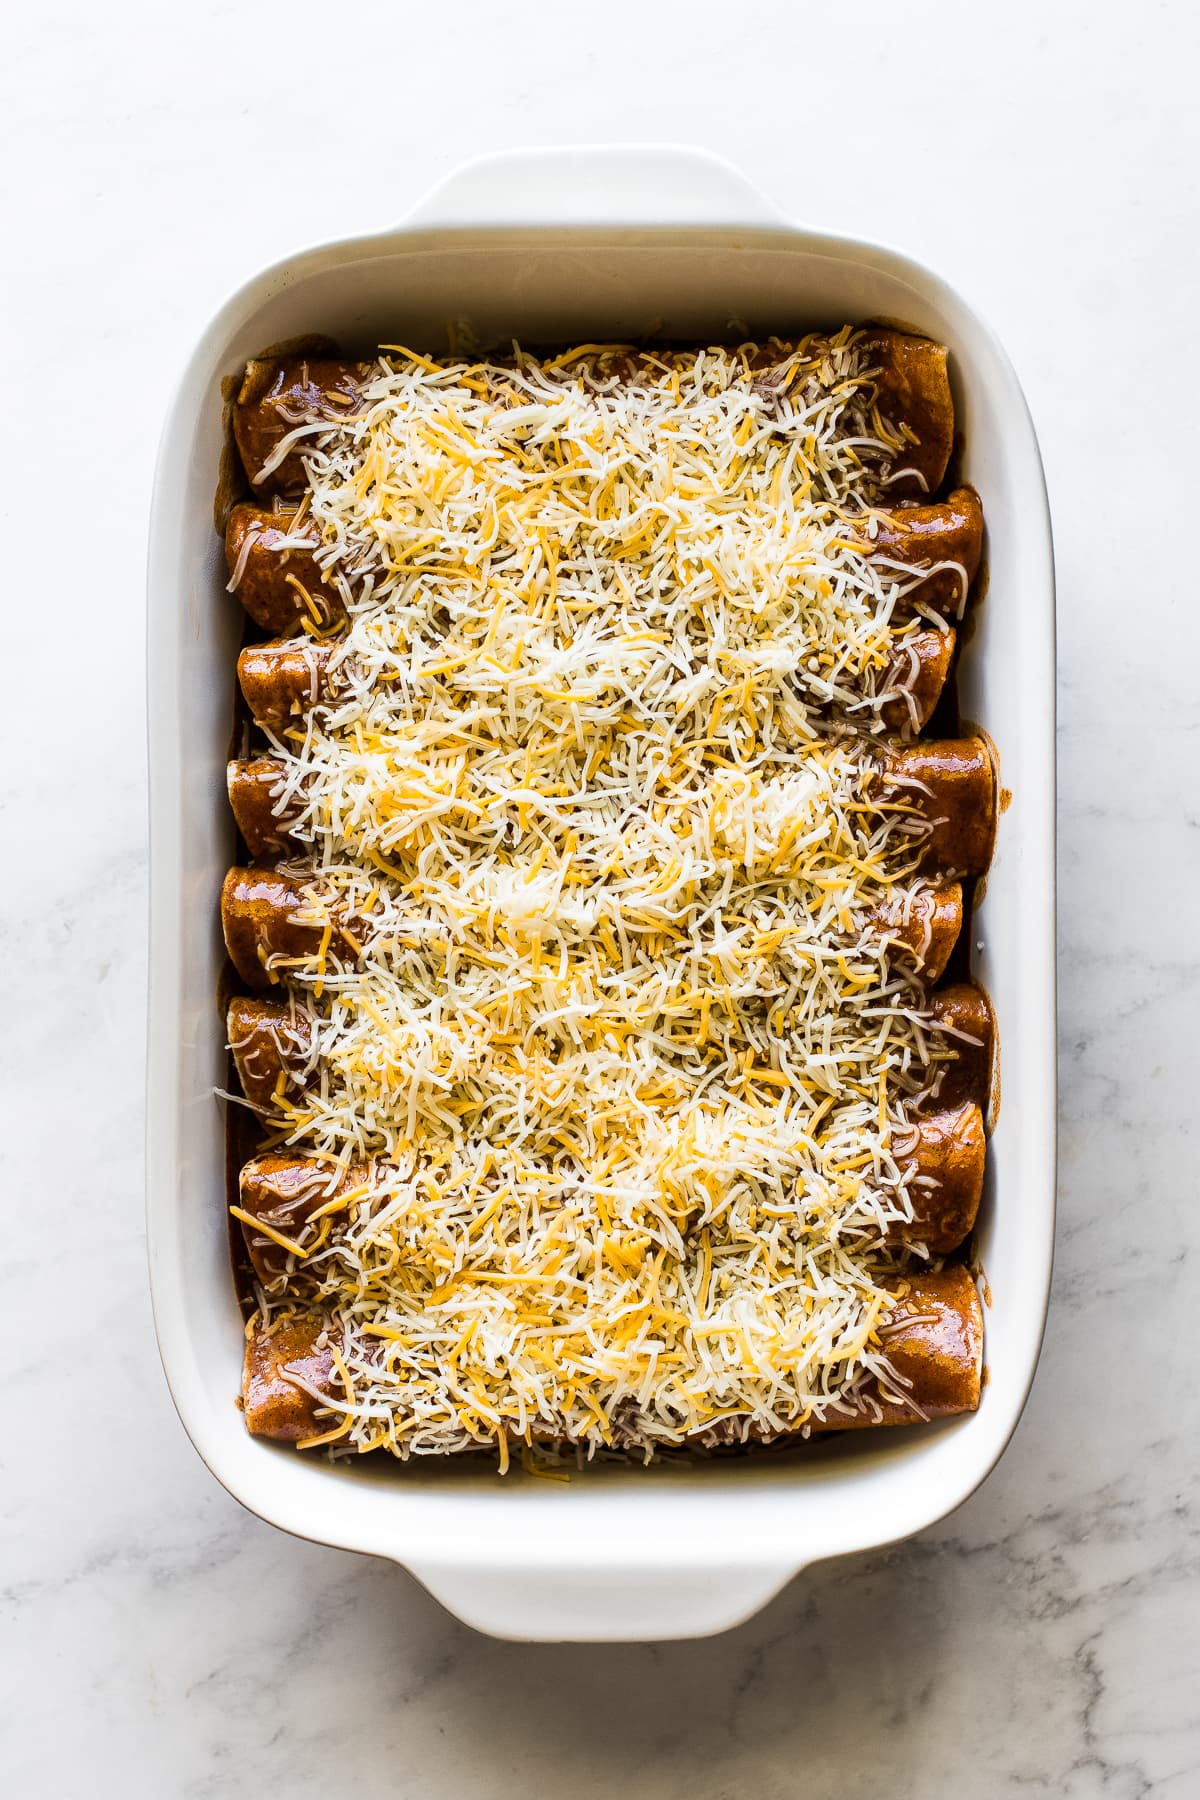 Enchiladas ready to be baked in a pan topped with enchilada sauce and shredded cheese.